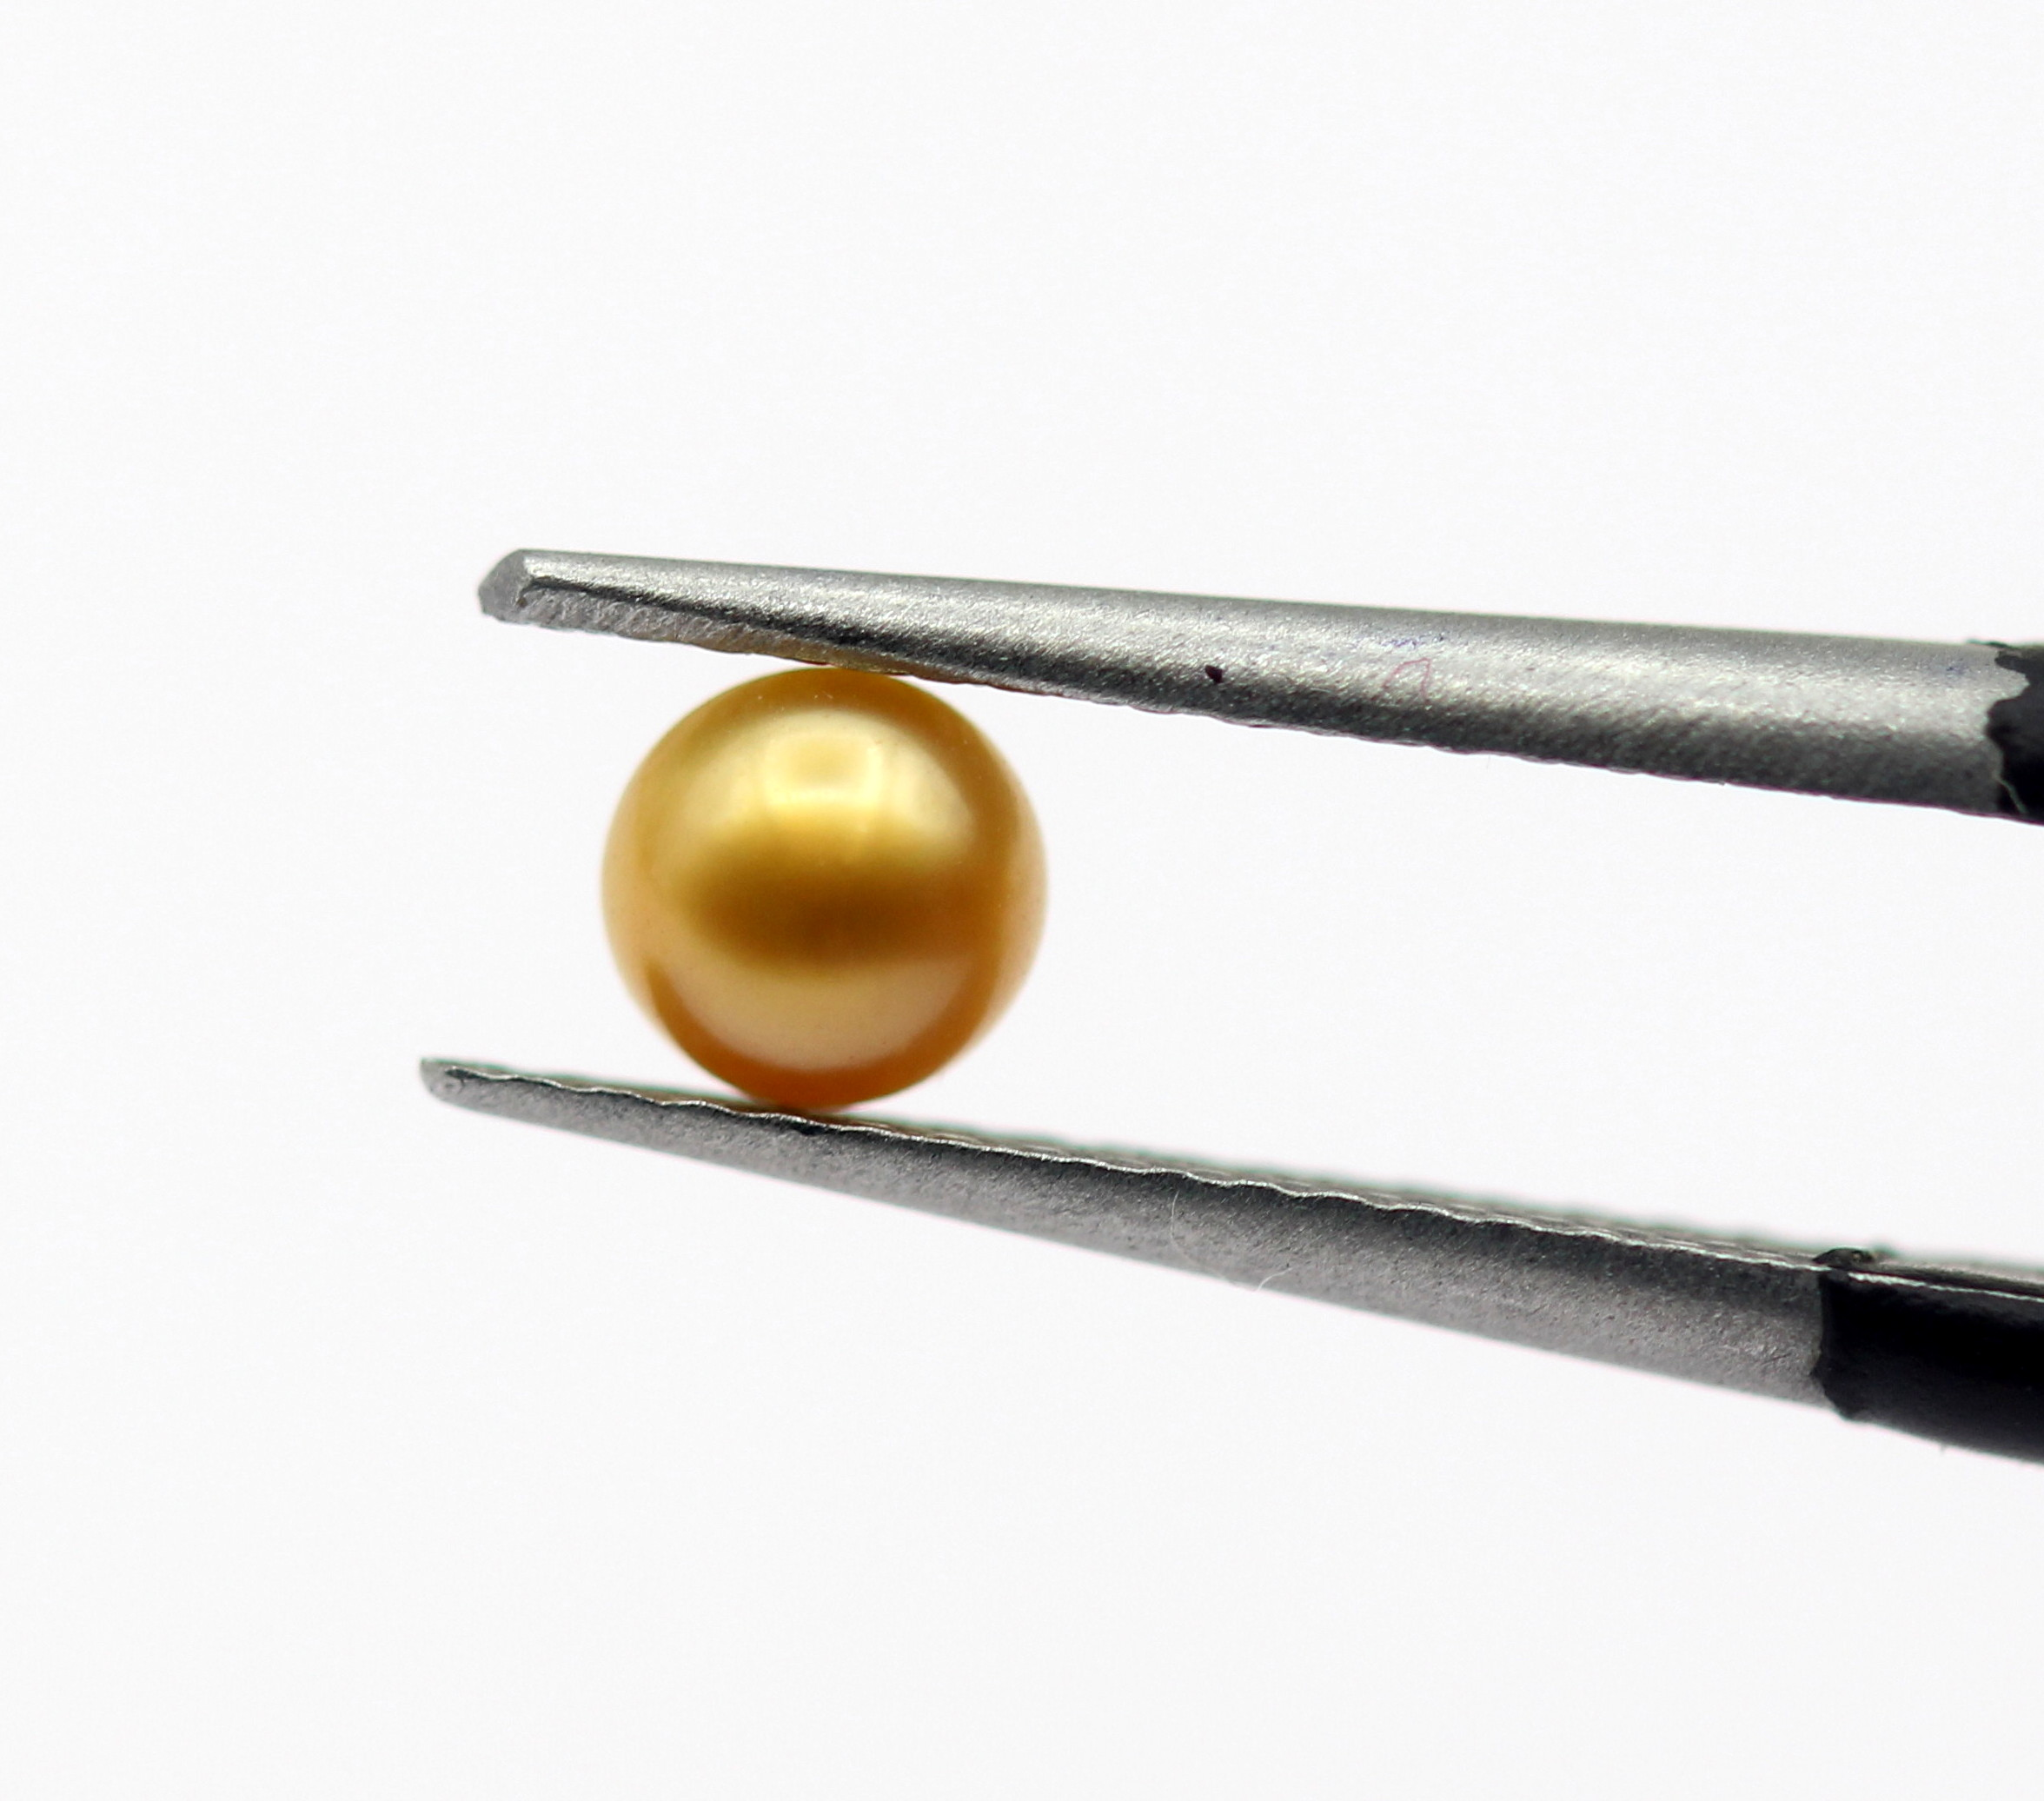 0.44 Ct Basra Pearl Smooth Golden Color Round Shape Natural Pearl Certified